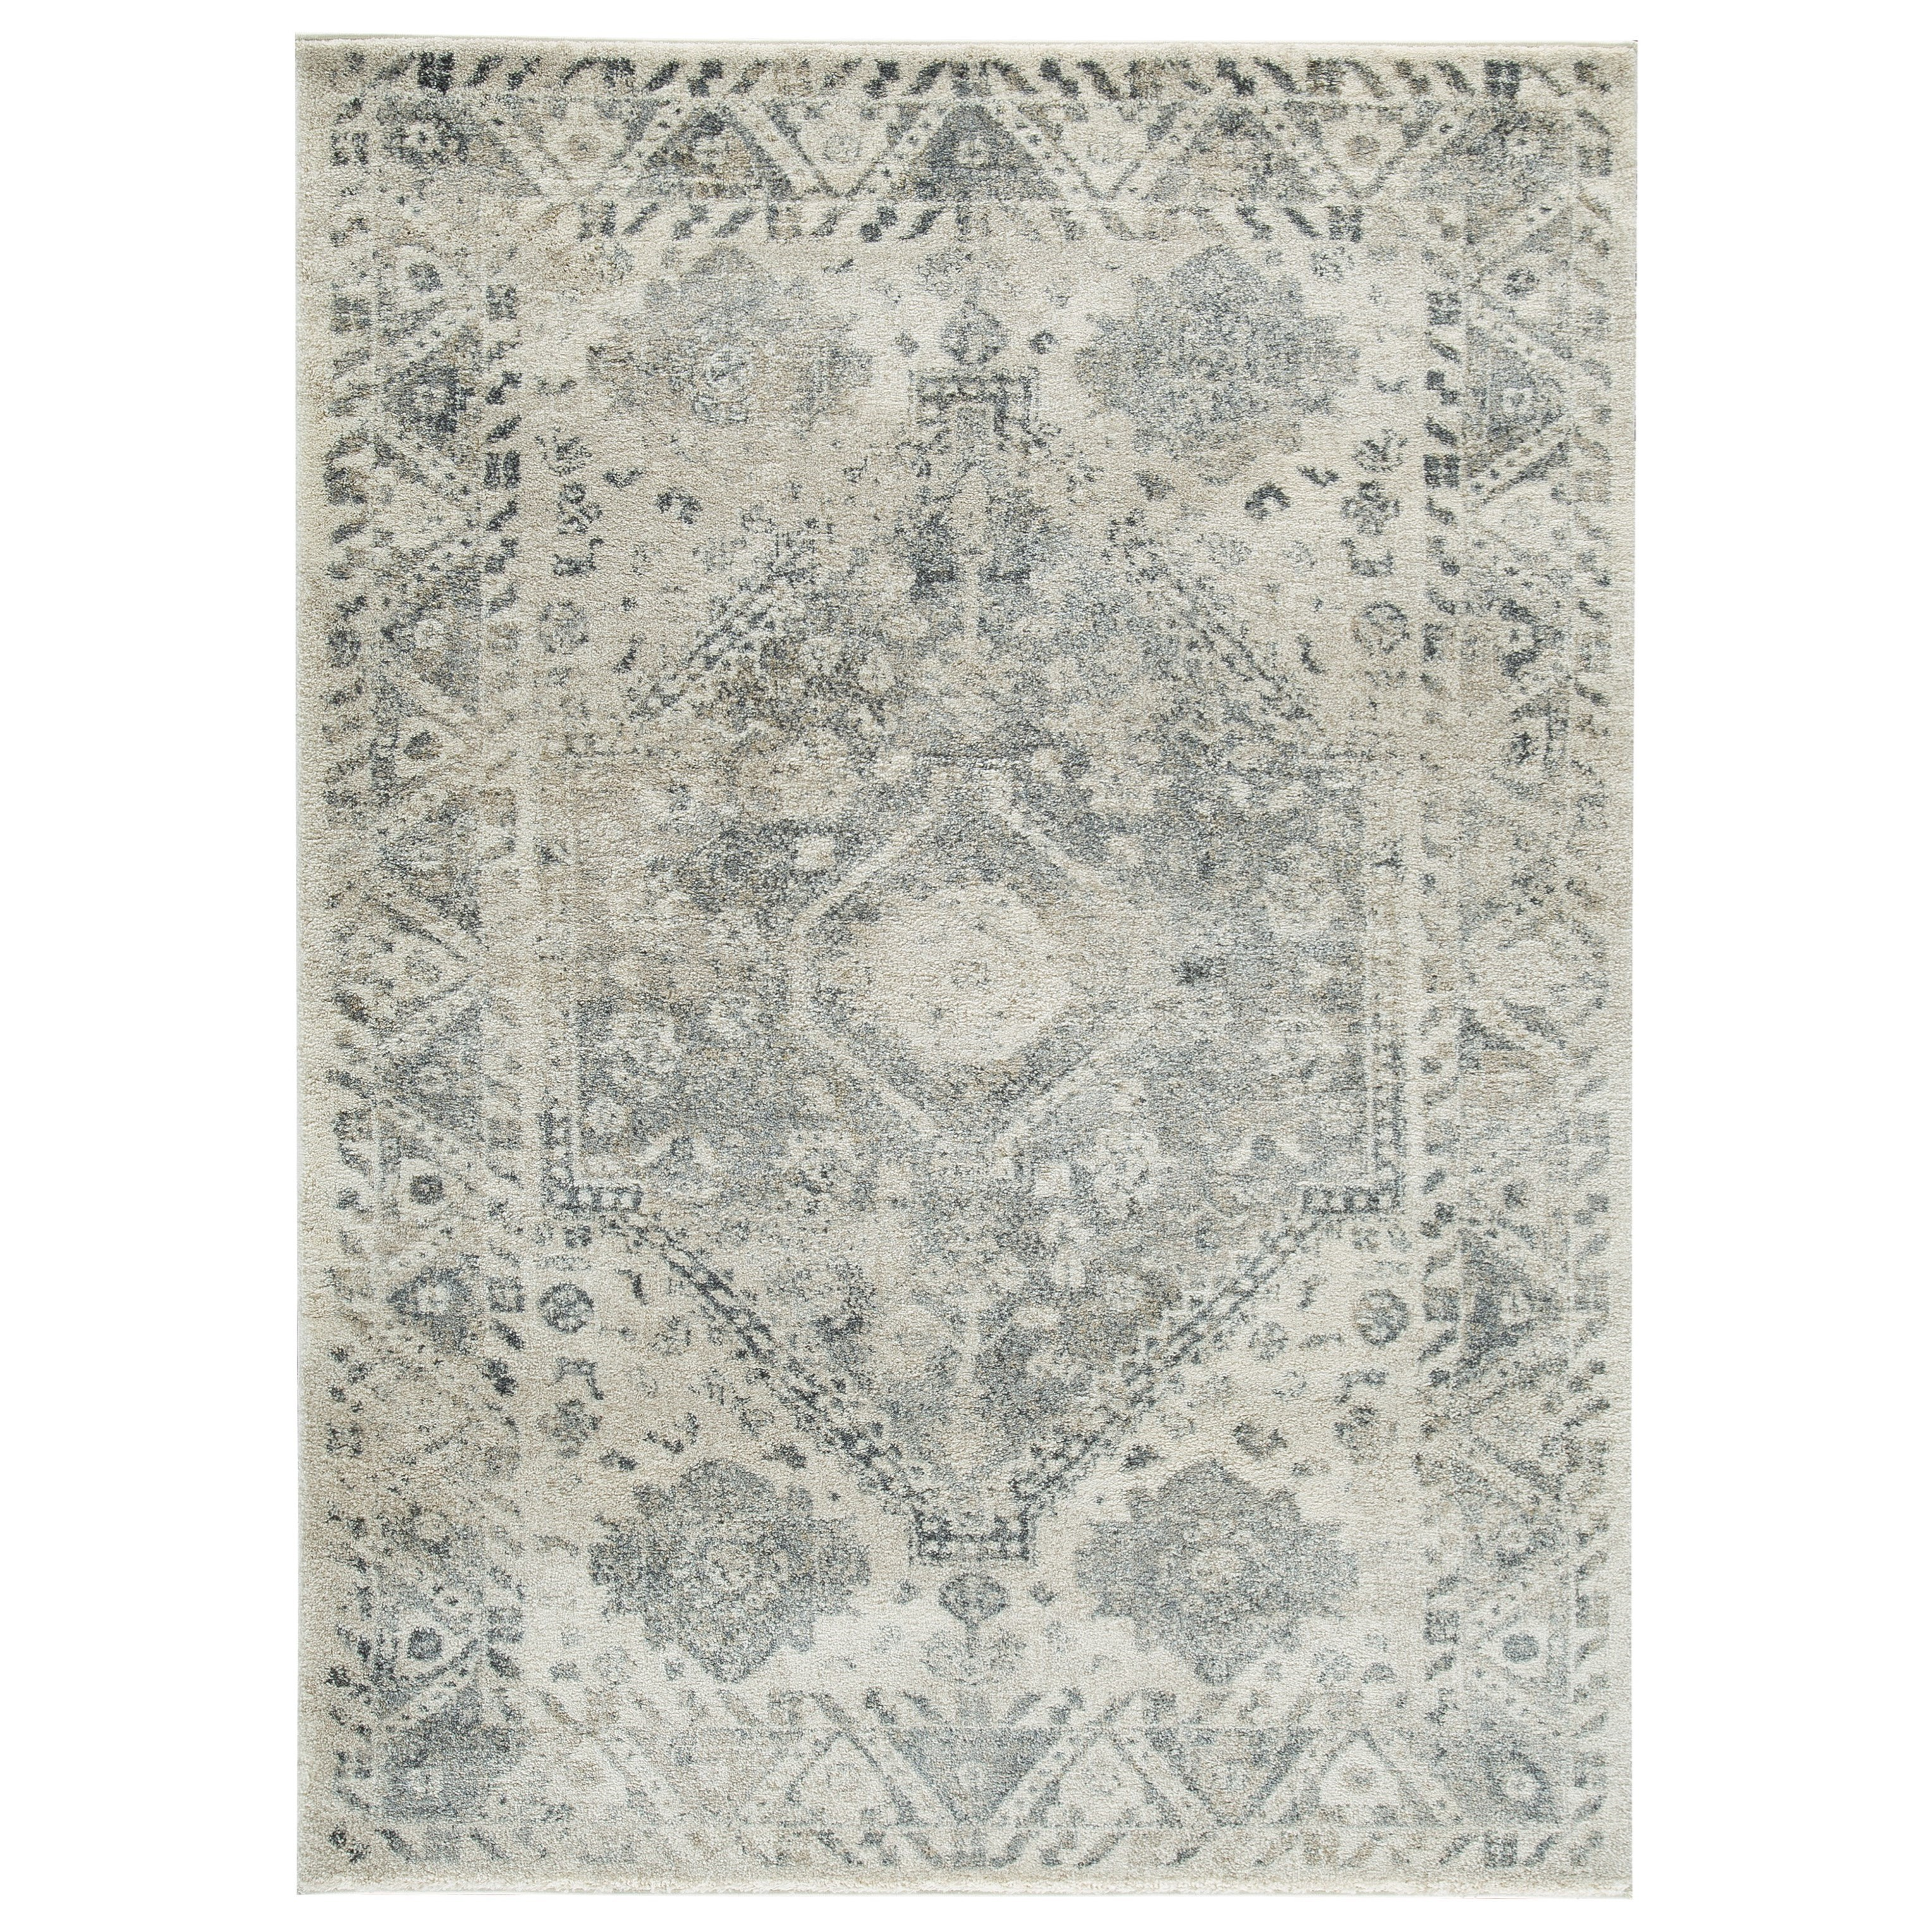 Casual Area Rugs Precia Gray/Cream Medium Rug by Signature Design by Ashley at Household Furniture